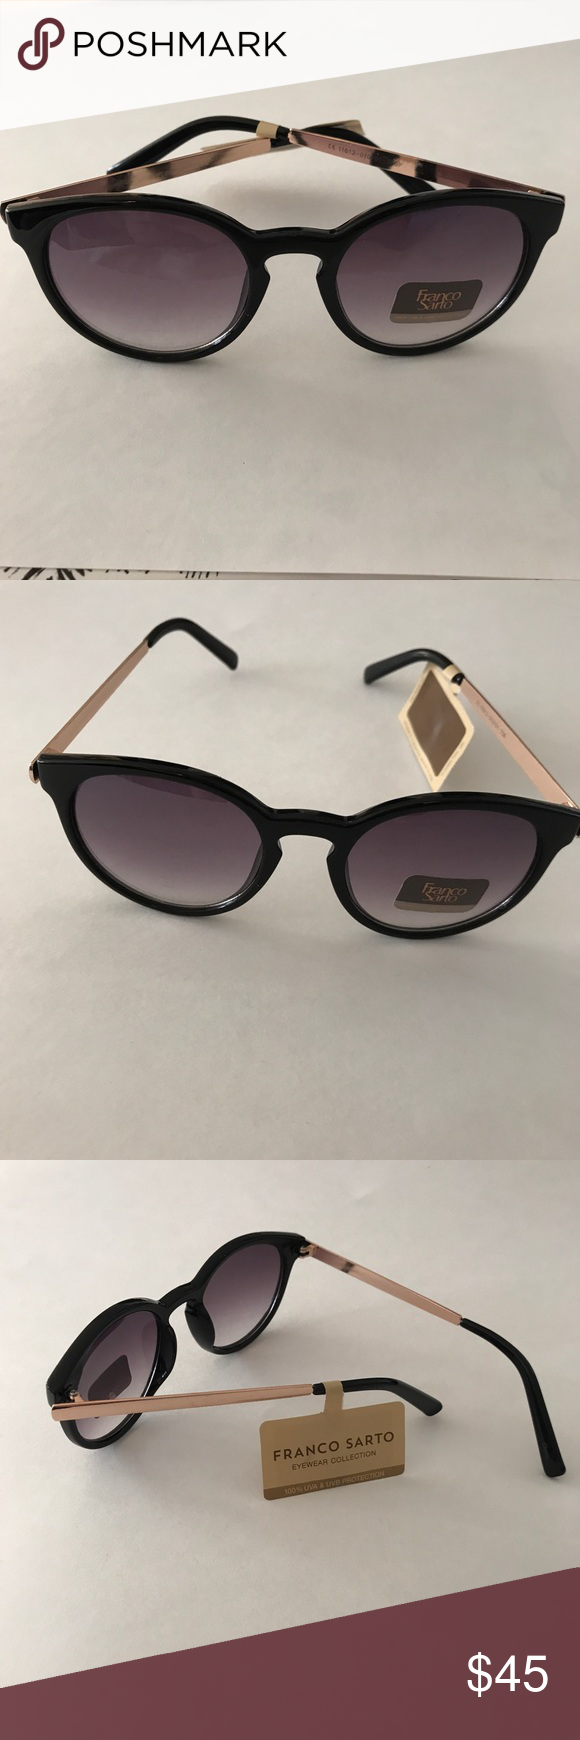 afc026d77db3 Circular frame with pronounced corners. Plastic  Metal. 100 UV protection.  Hombre tinted lenses. Franco Sarto Accessories Glasses